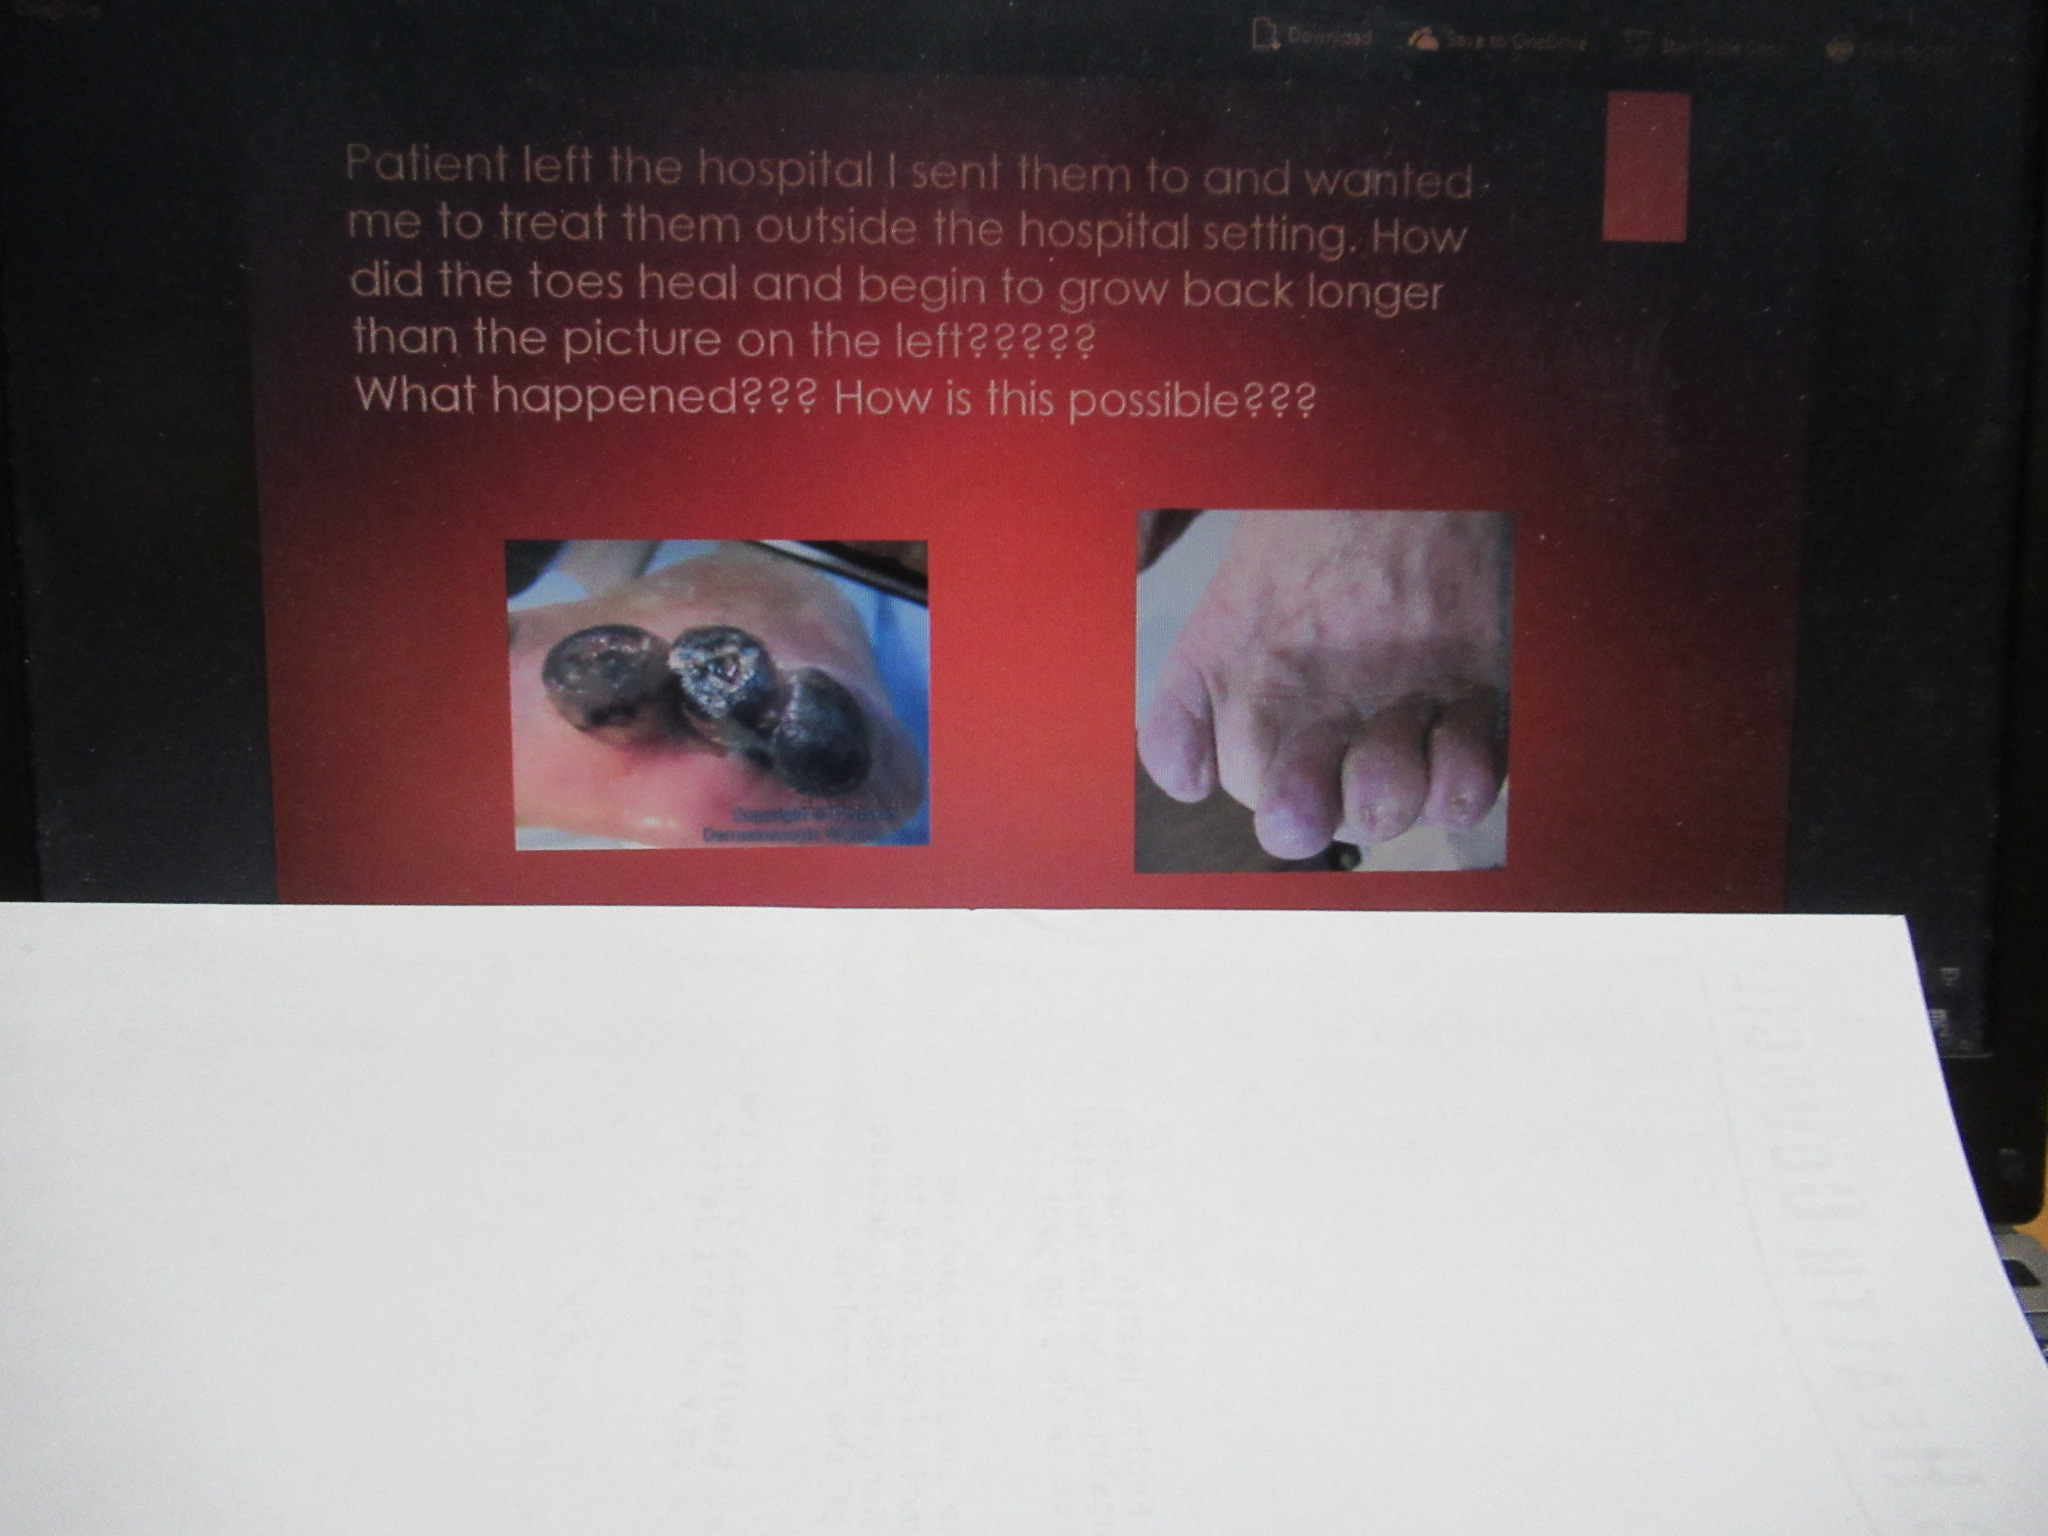 Gangrenous toes can heal and begin to regrow